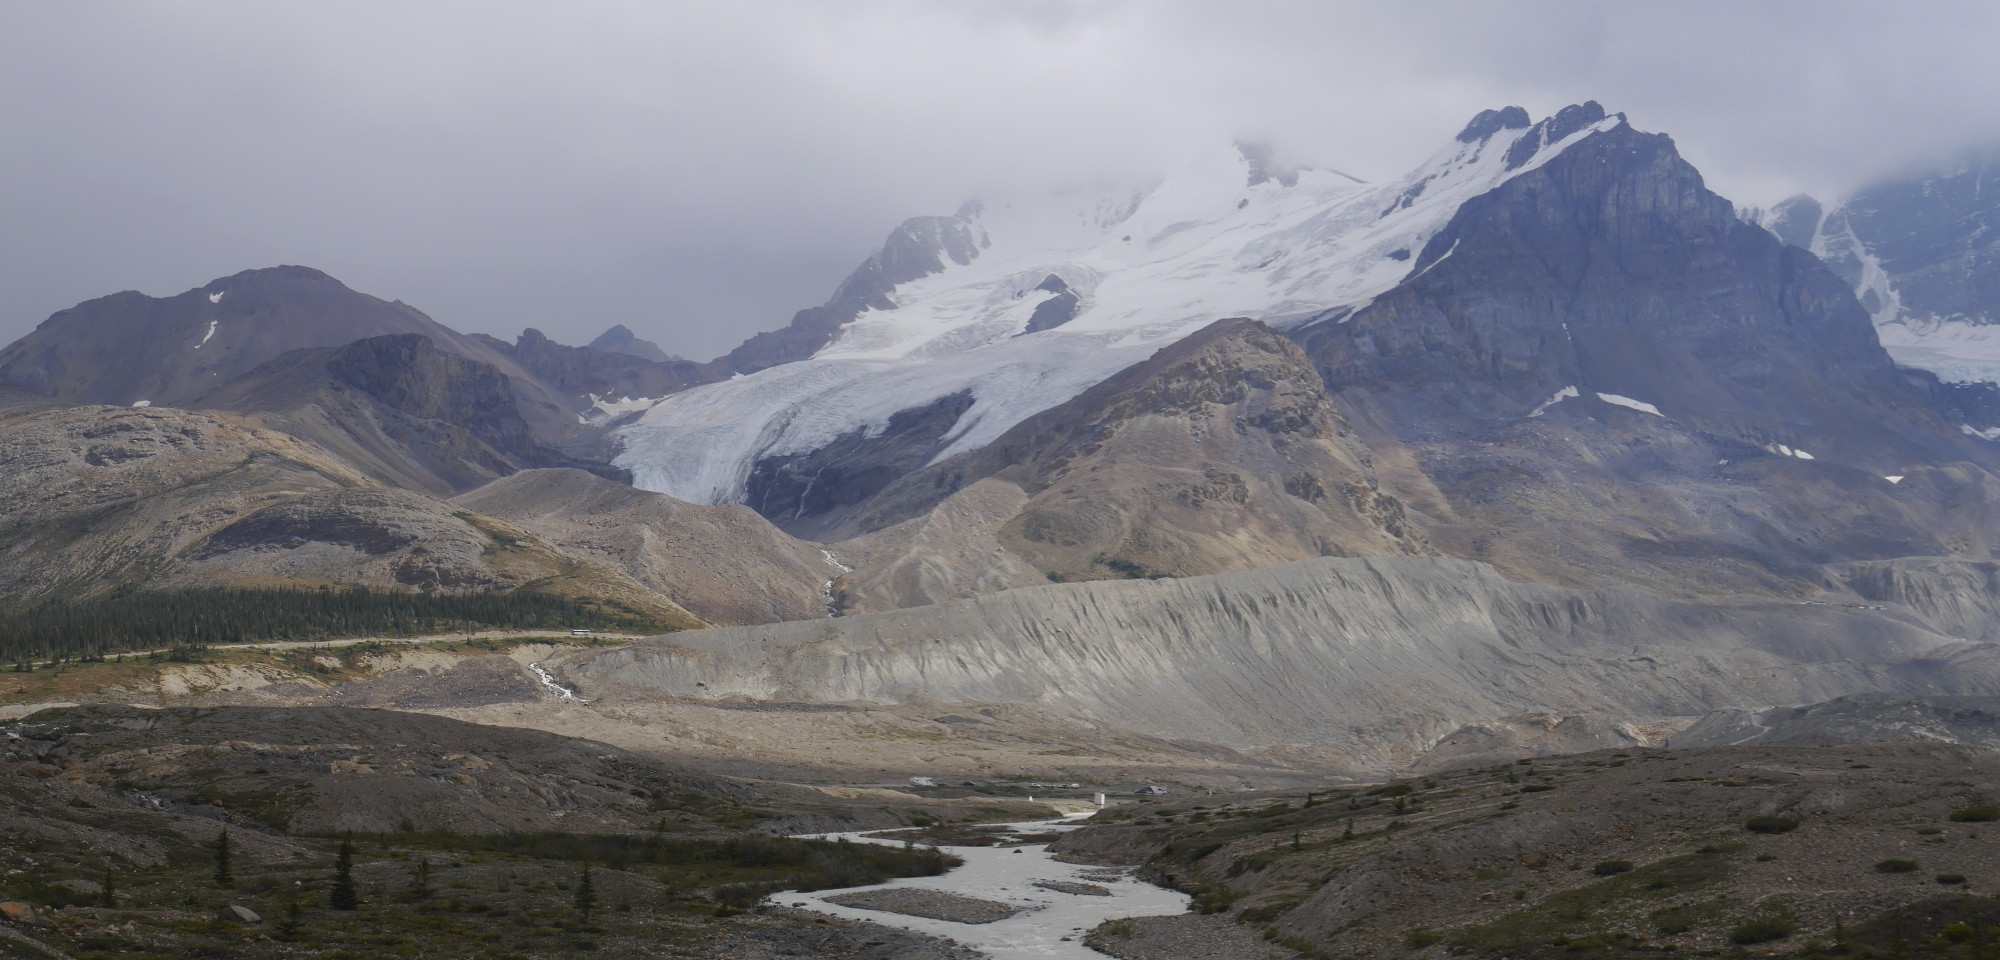 Mt. Athabasca along the Icefield Highway on the boundary between Banff and Jasper National Parks.